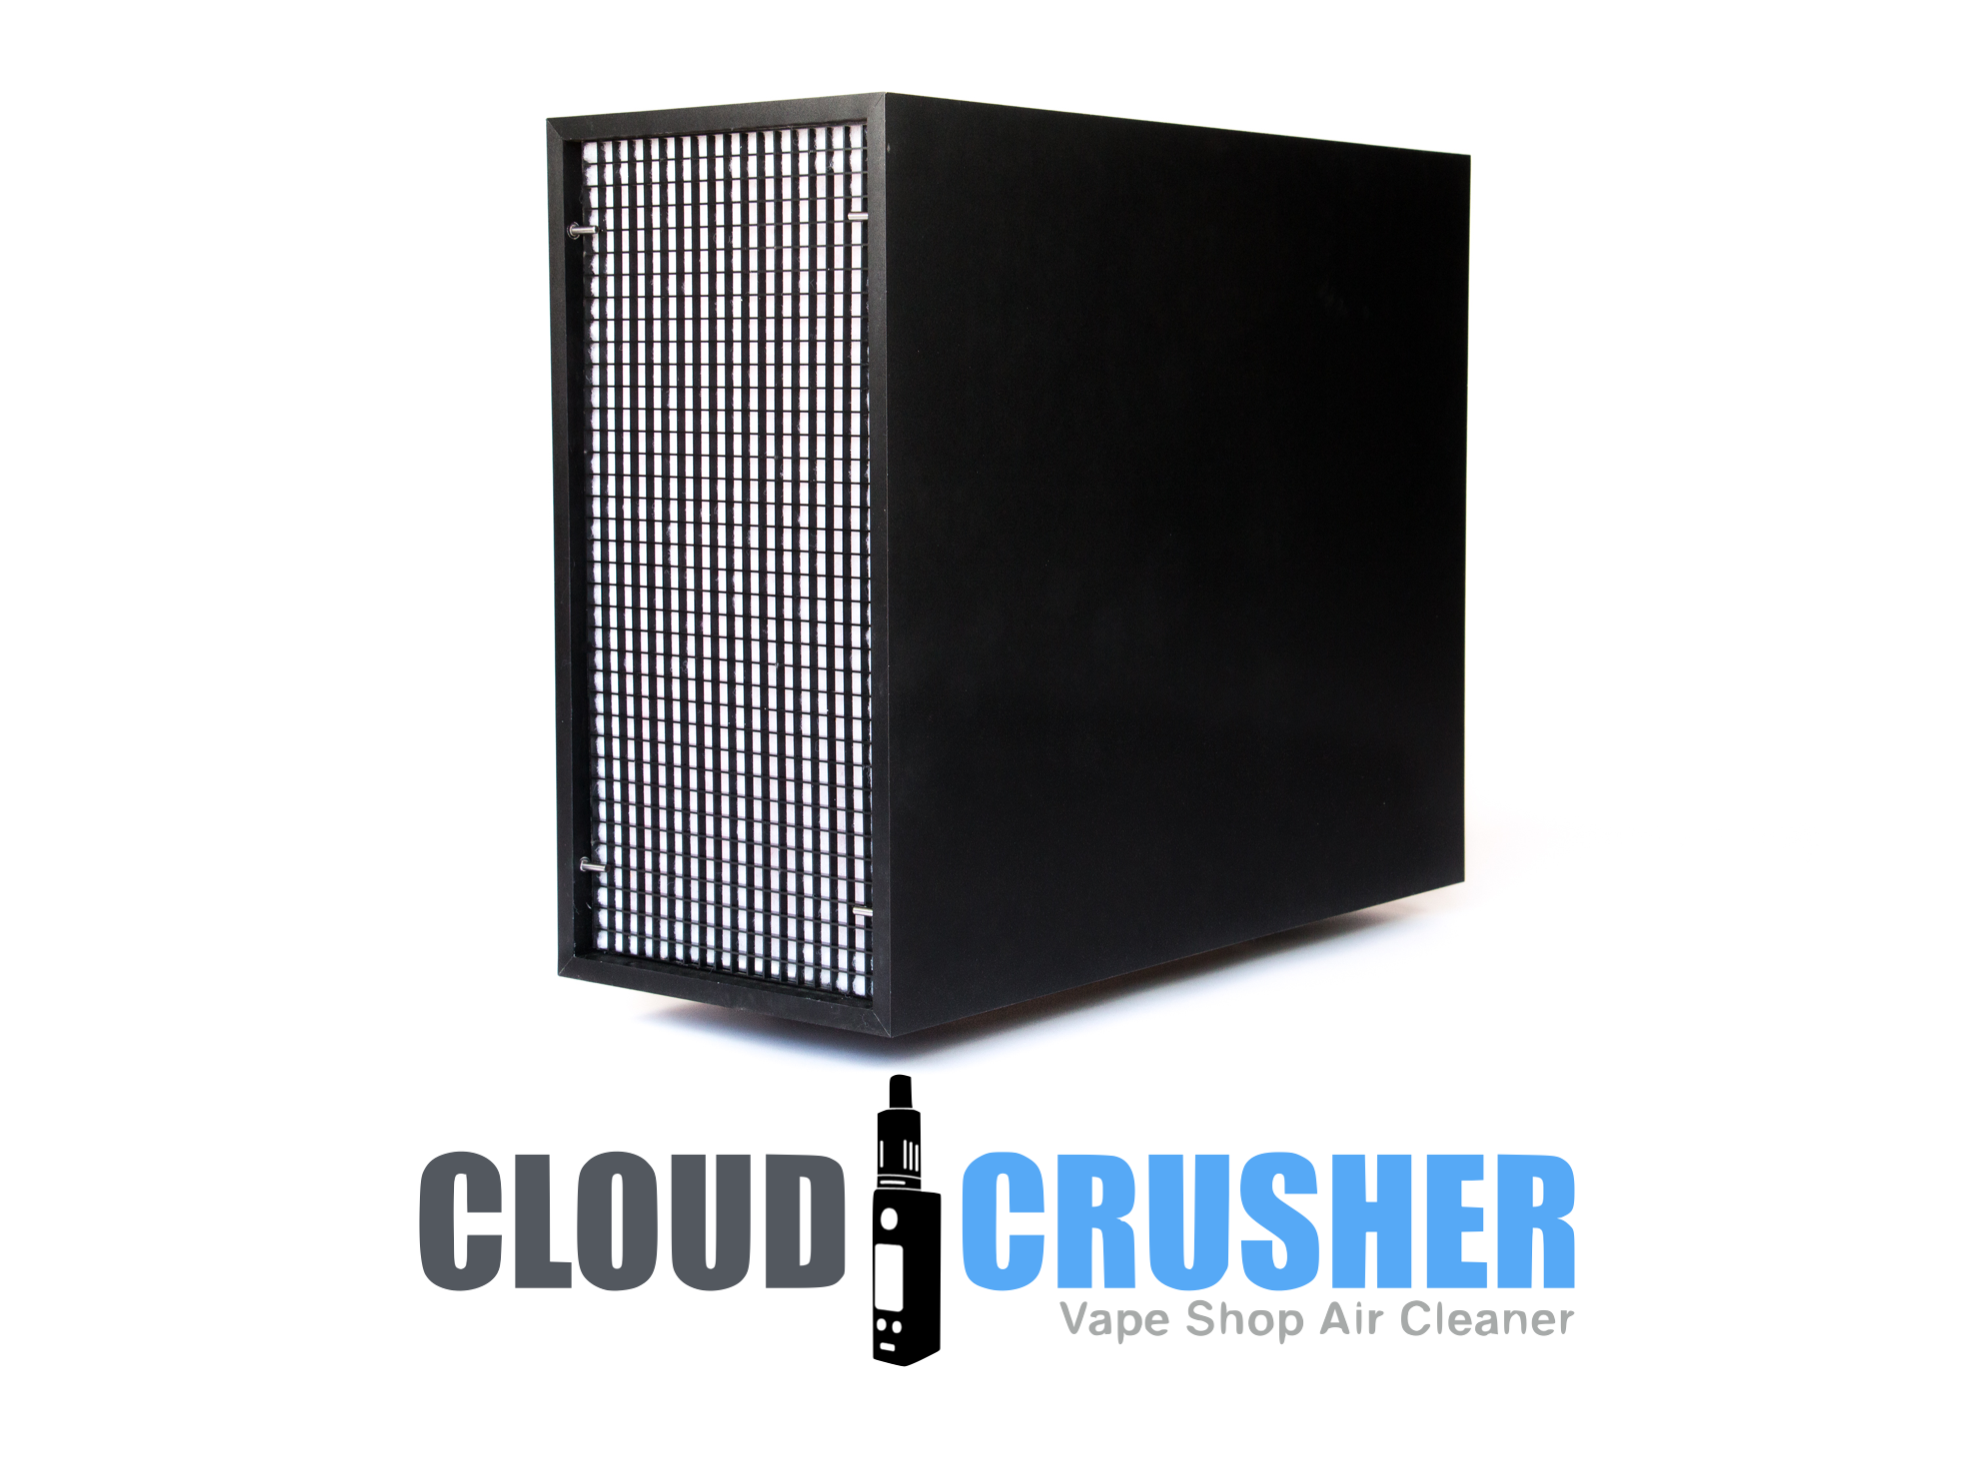 cloudcrusher-logo.png